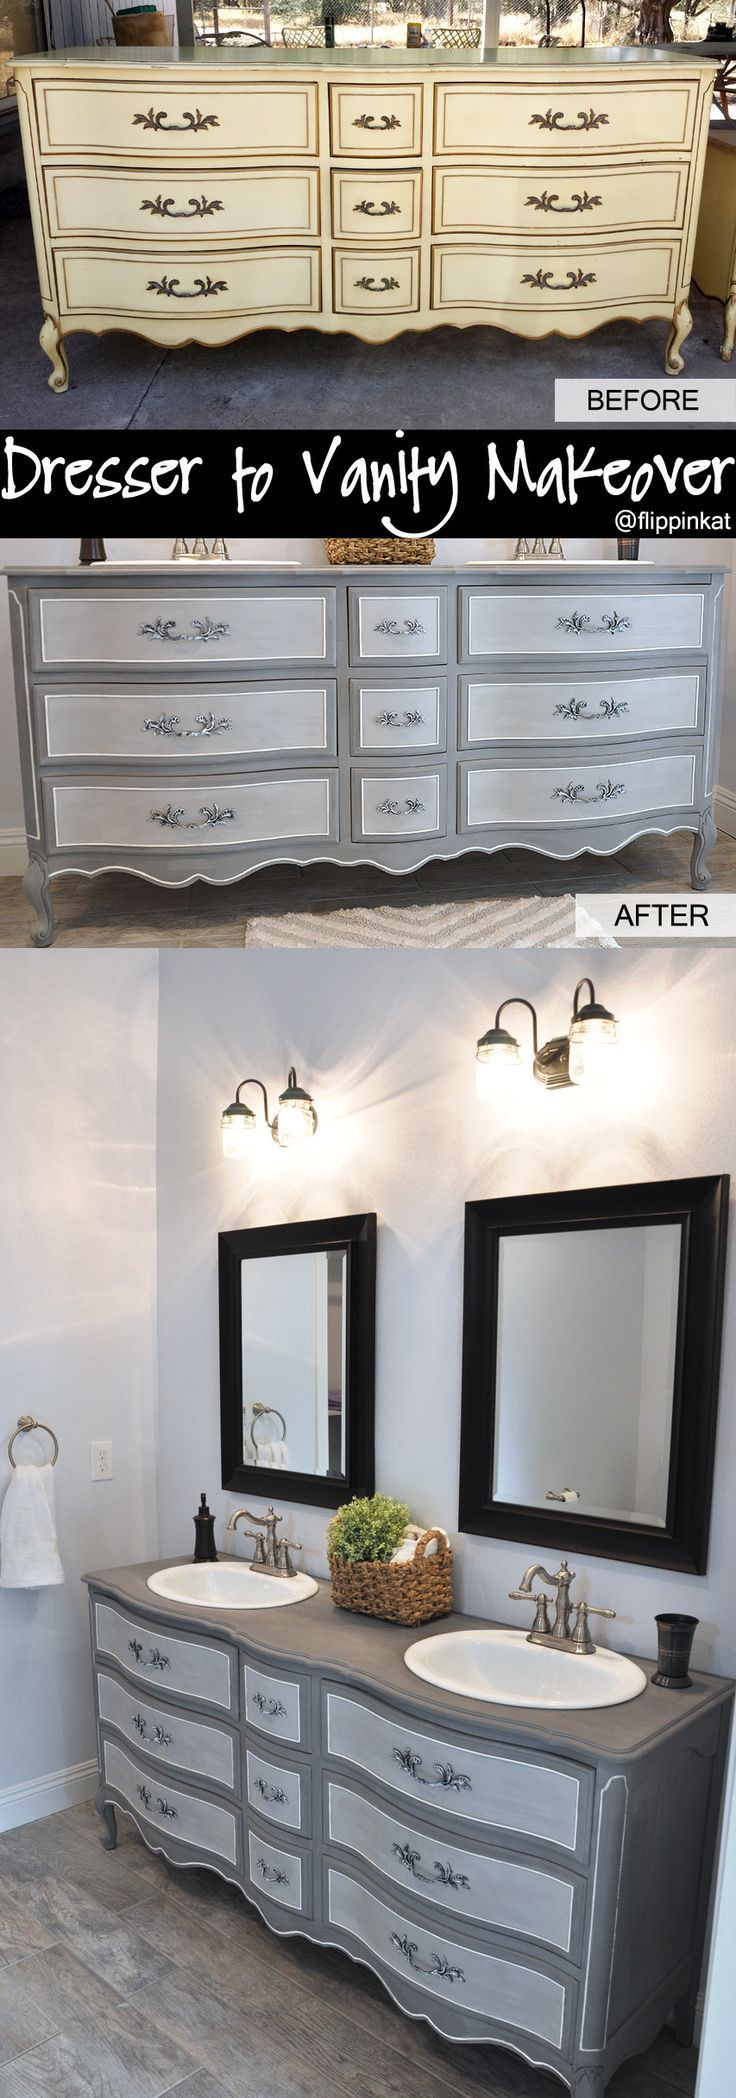 Dresser to vanity and bathroom renovation. Got an old French Provincial style dresser off Craigslist and gave it a makeover! I love the before and after.: